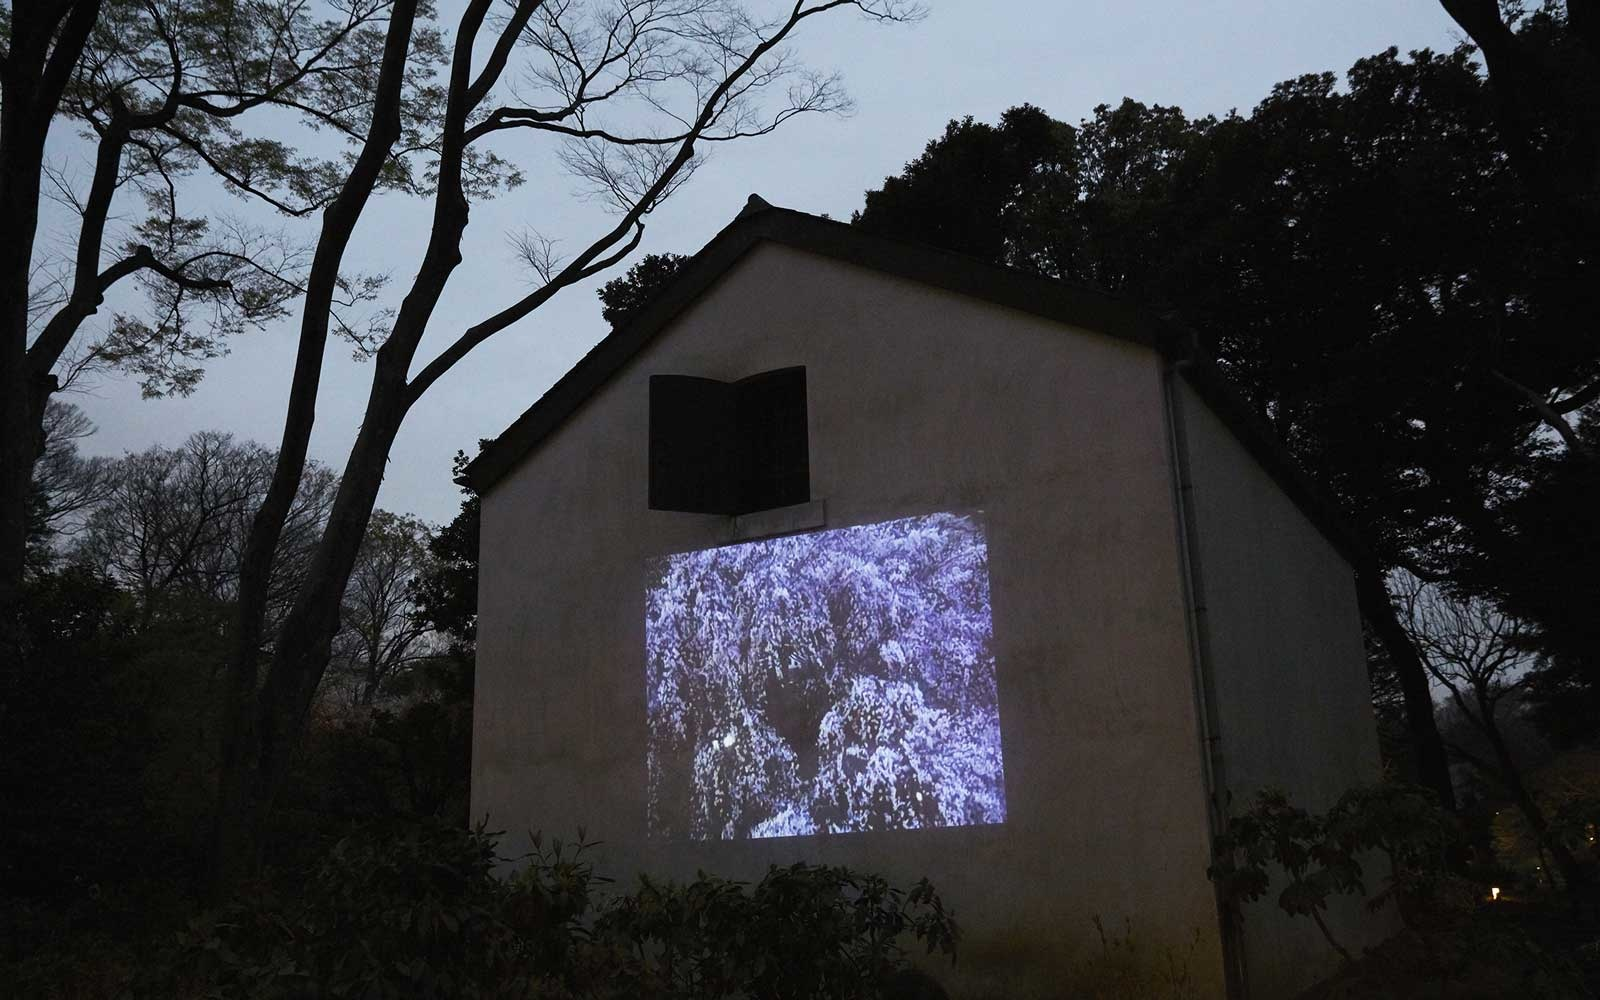 Rikugi-en Gardens Binkyo-ku, Tokyo Projection of Cherry Blossoms on building near Weeping Cherry Blossom tree